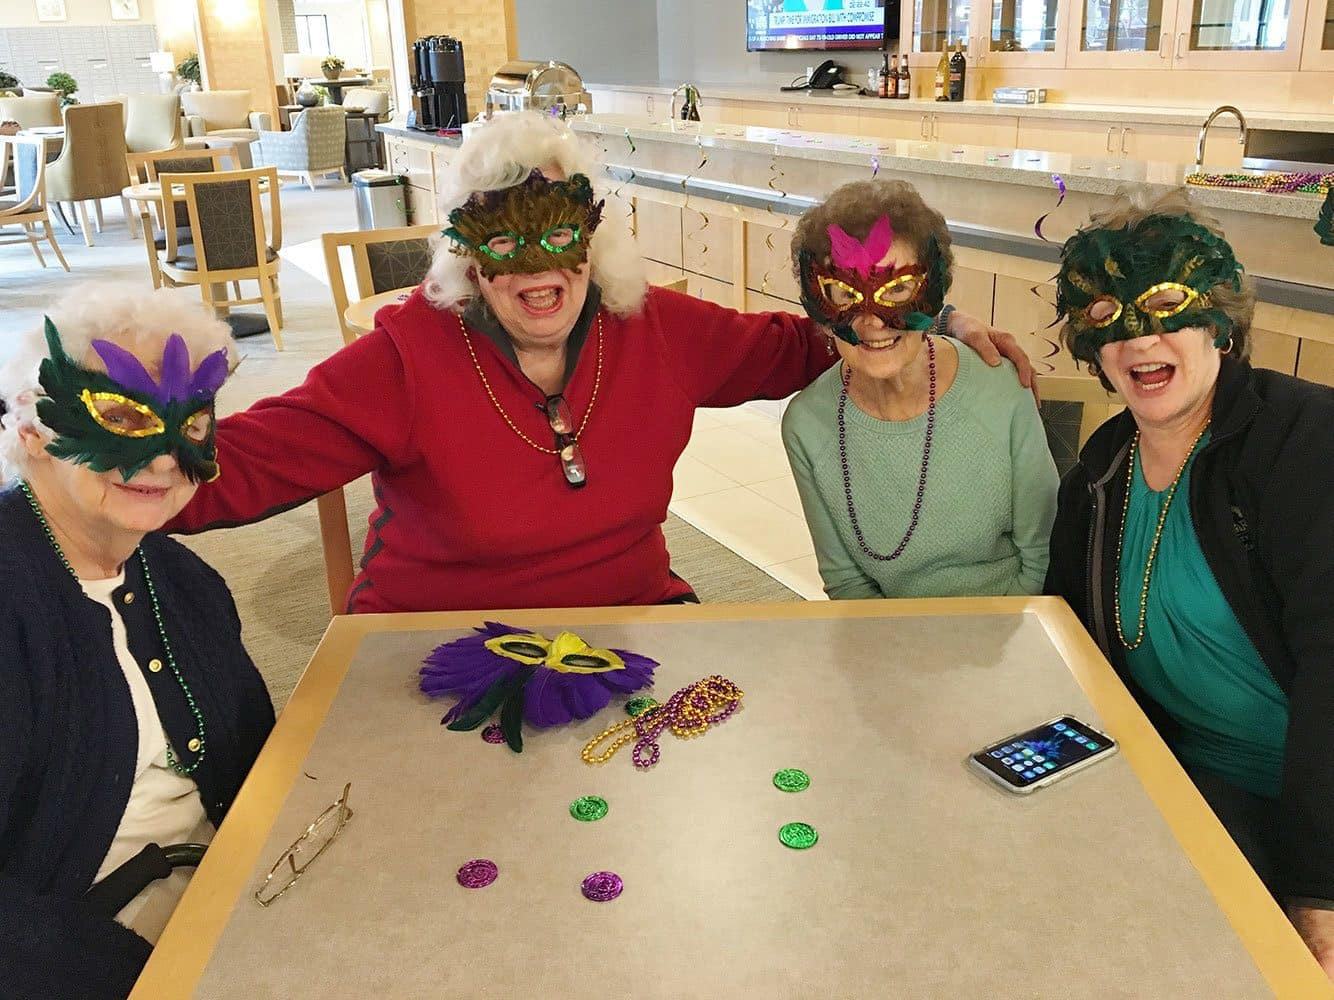 Mask party at our senior living community in Auburn, WA